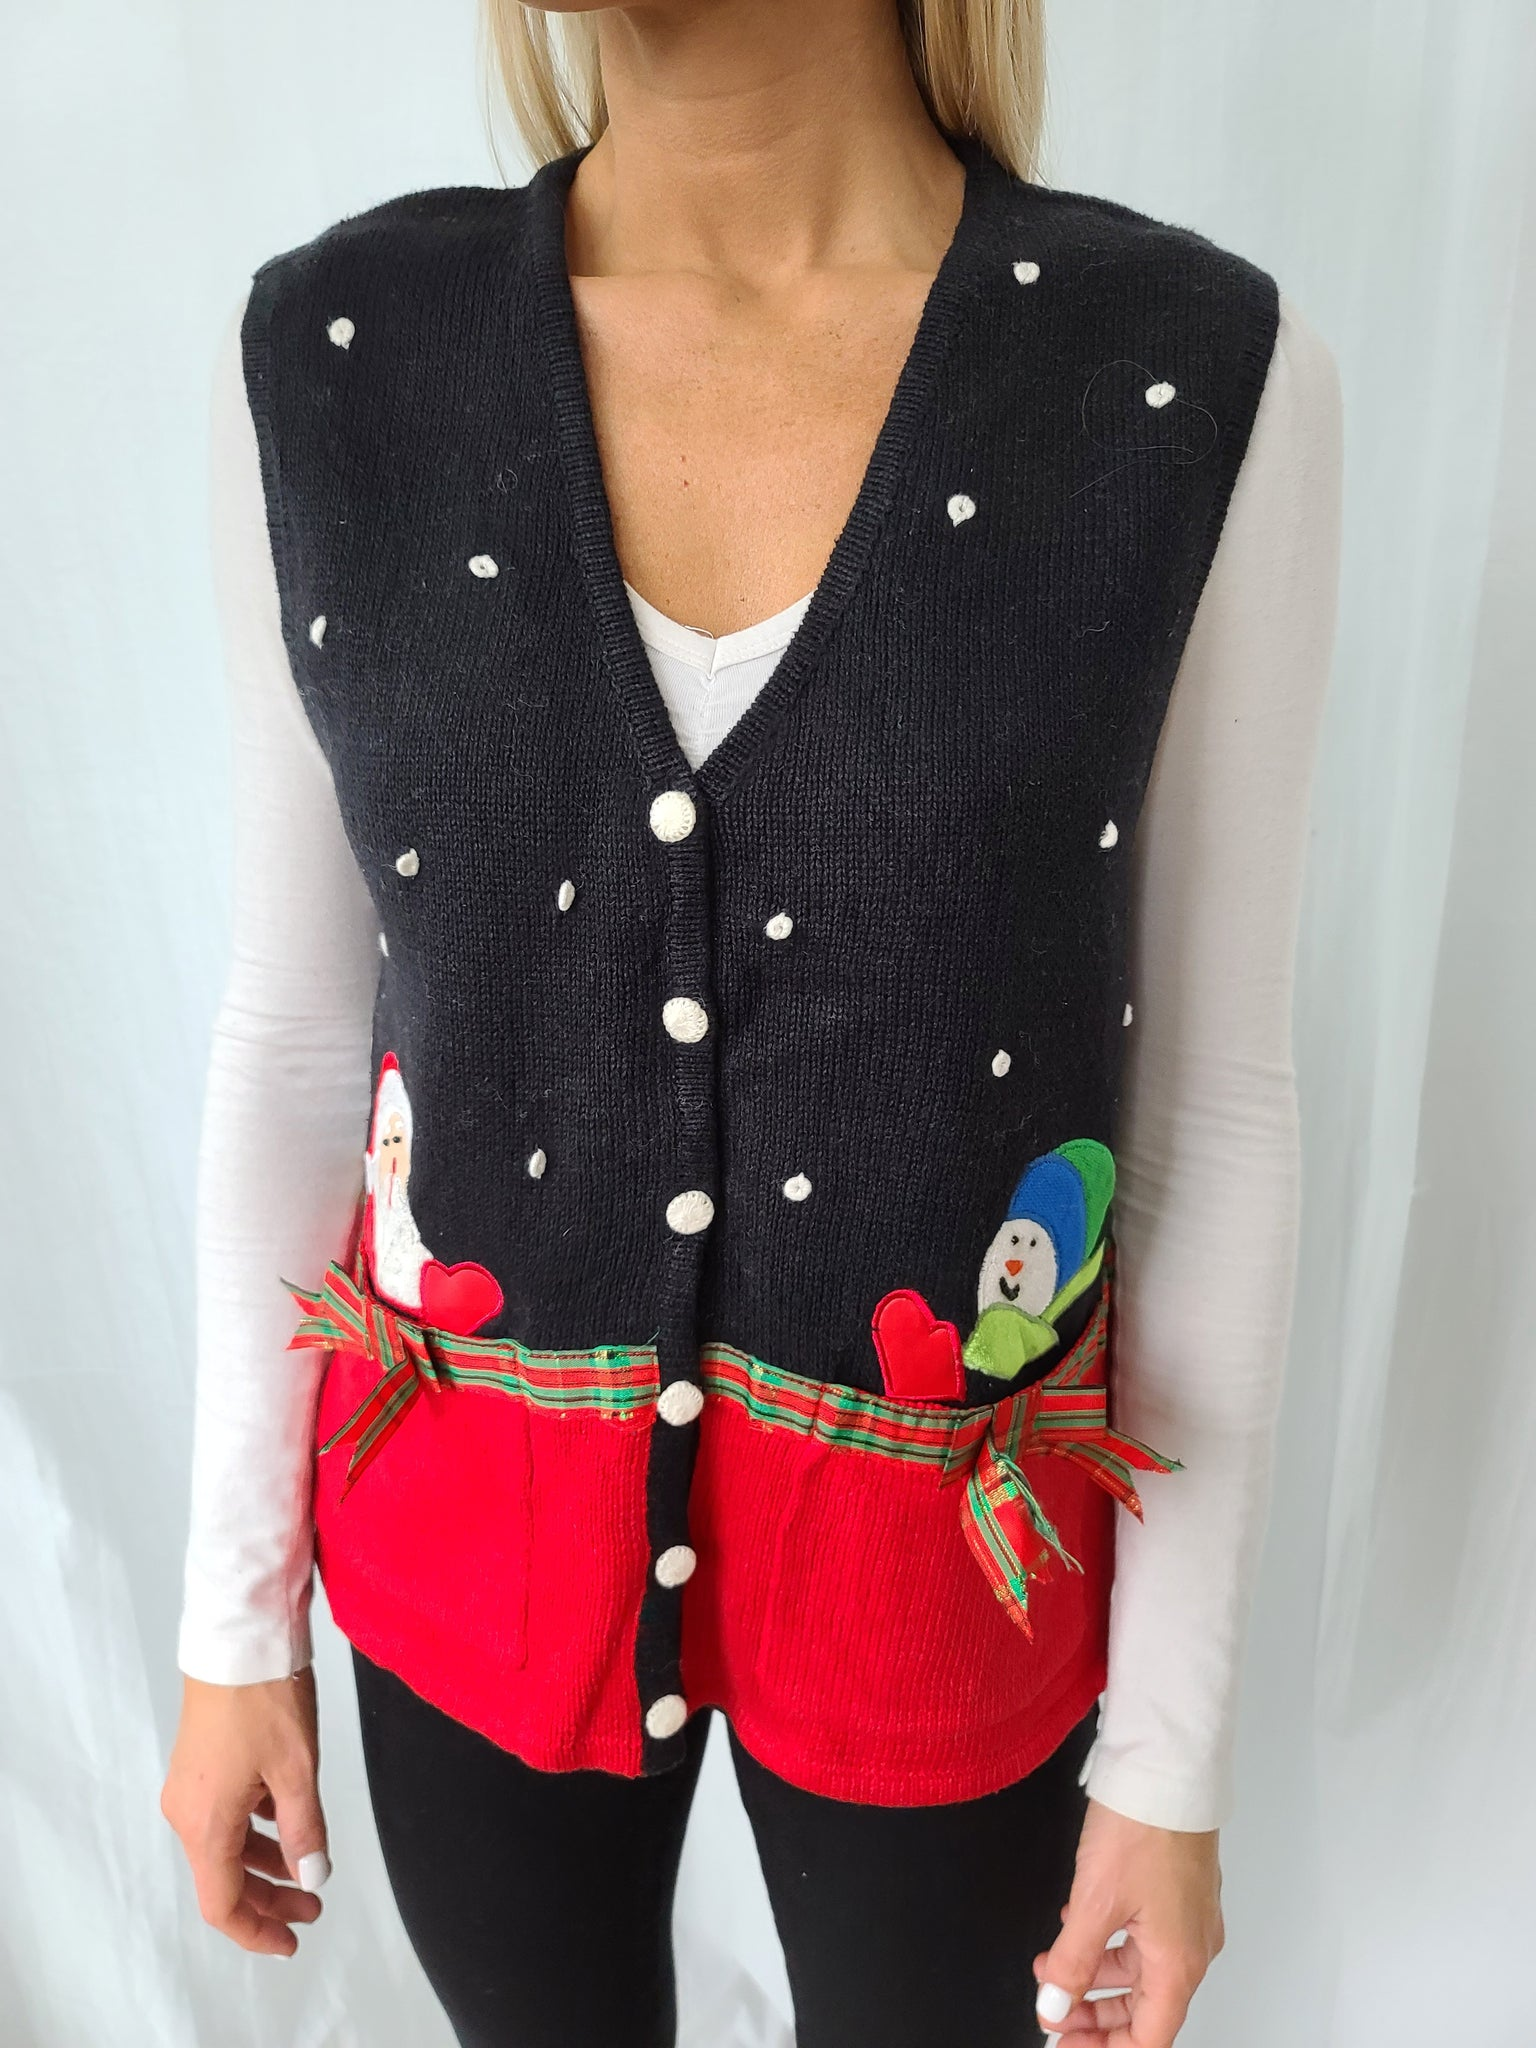 Santa and Snowman black and red vest with Pockets